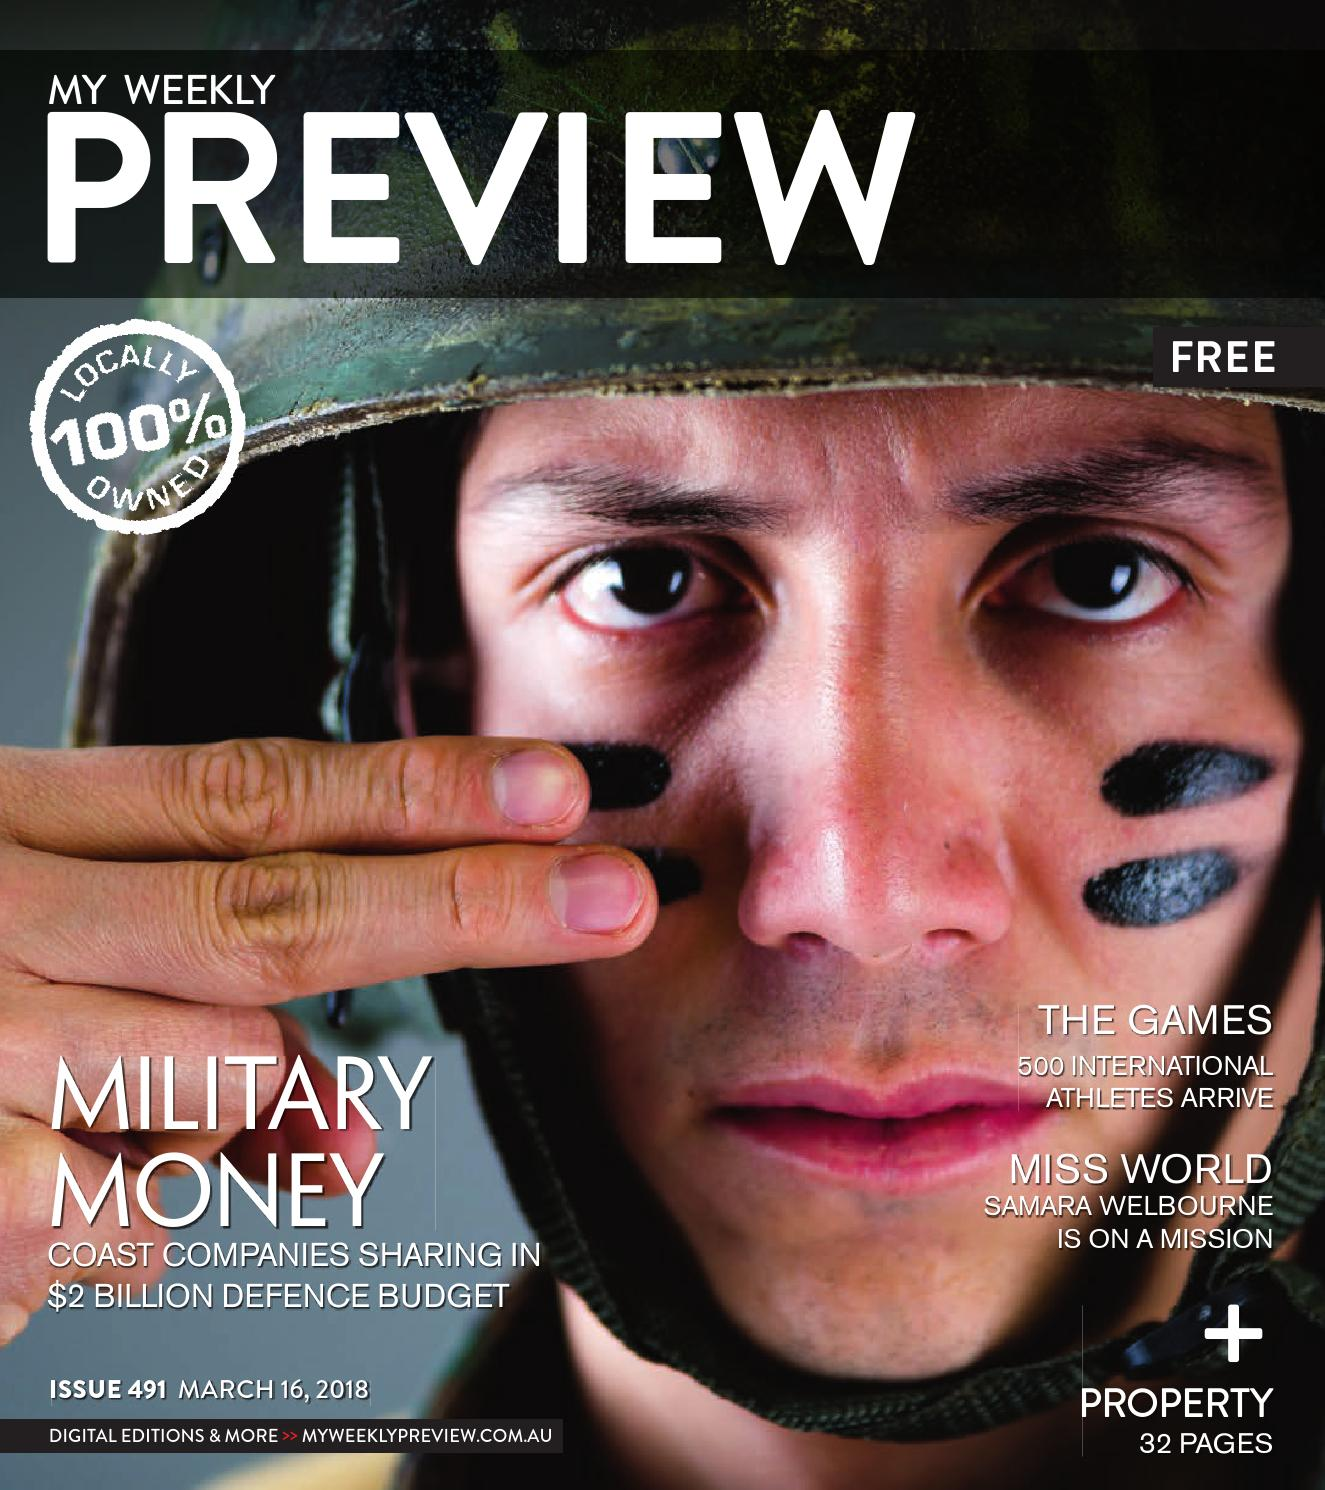 My Weekly Preview Issue 491 by My Weekly Preview - issuu